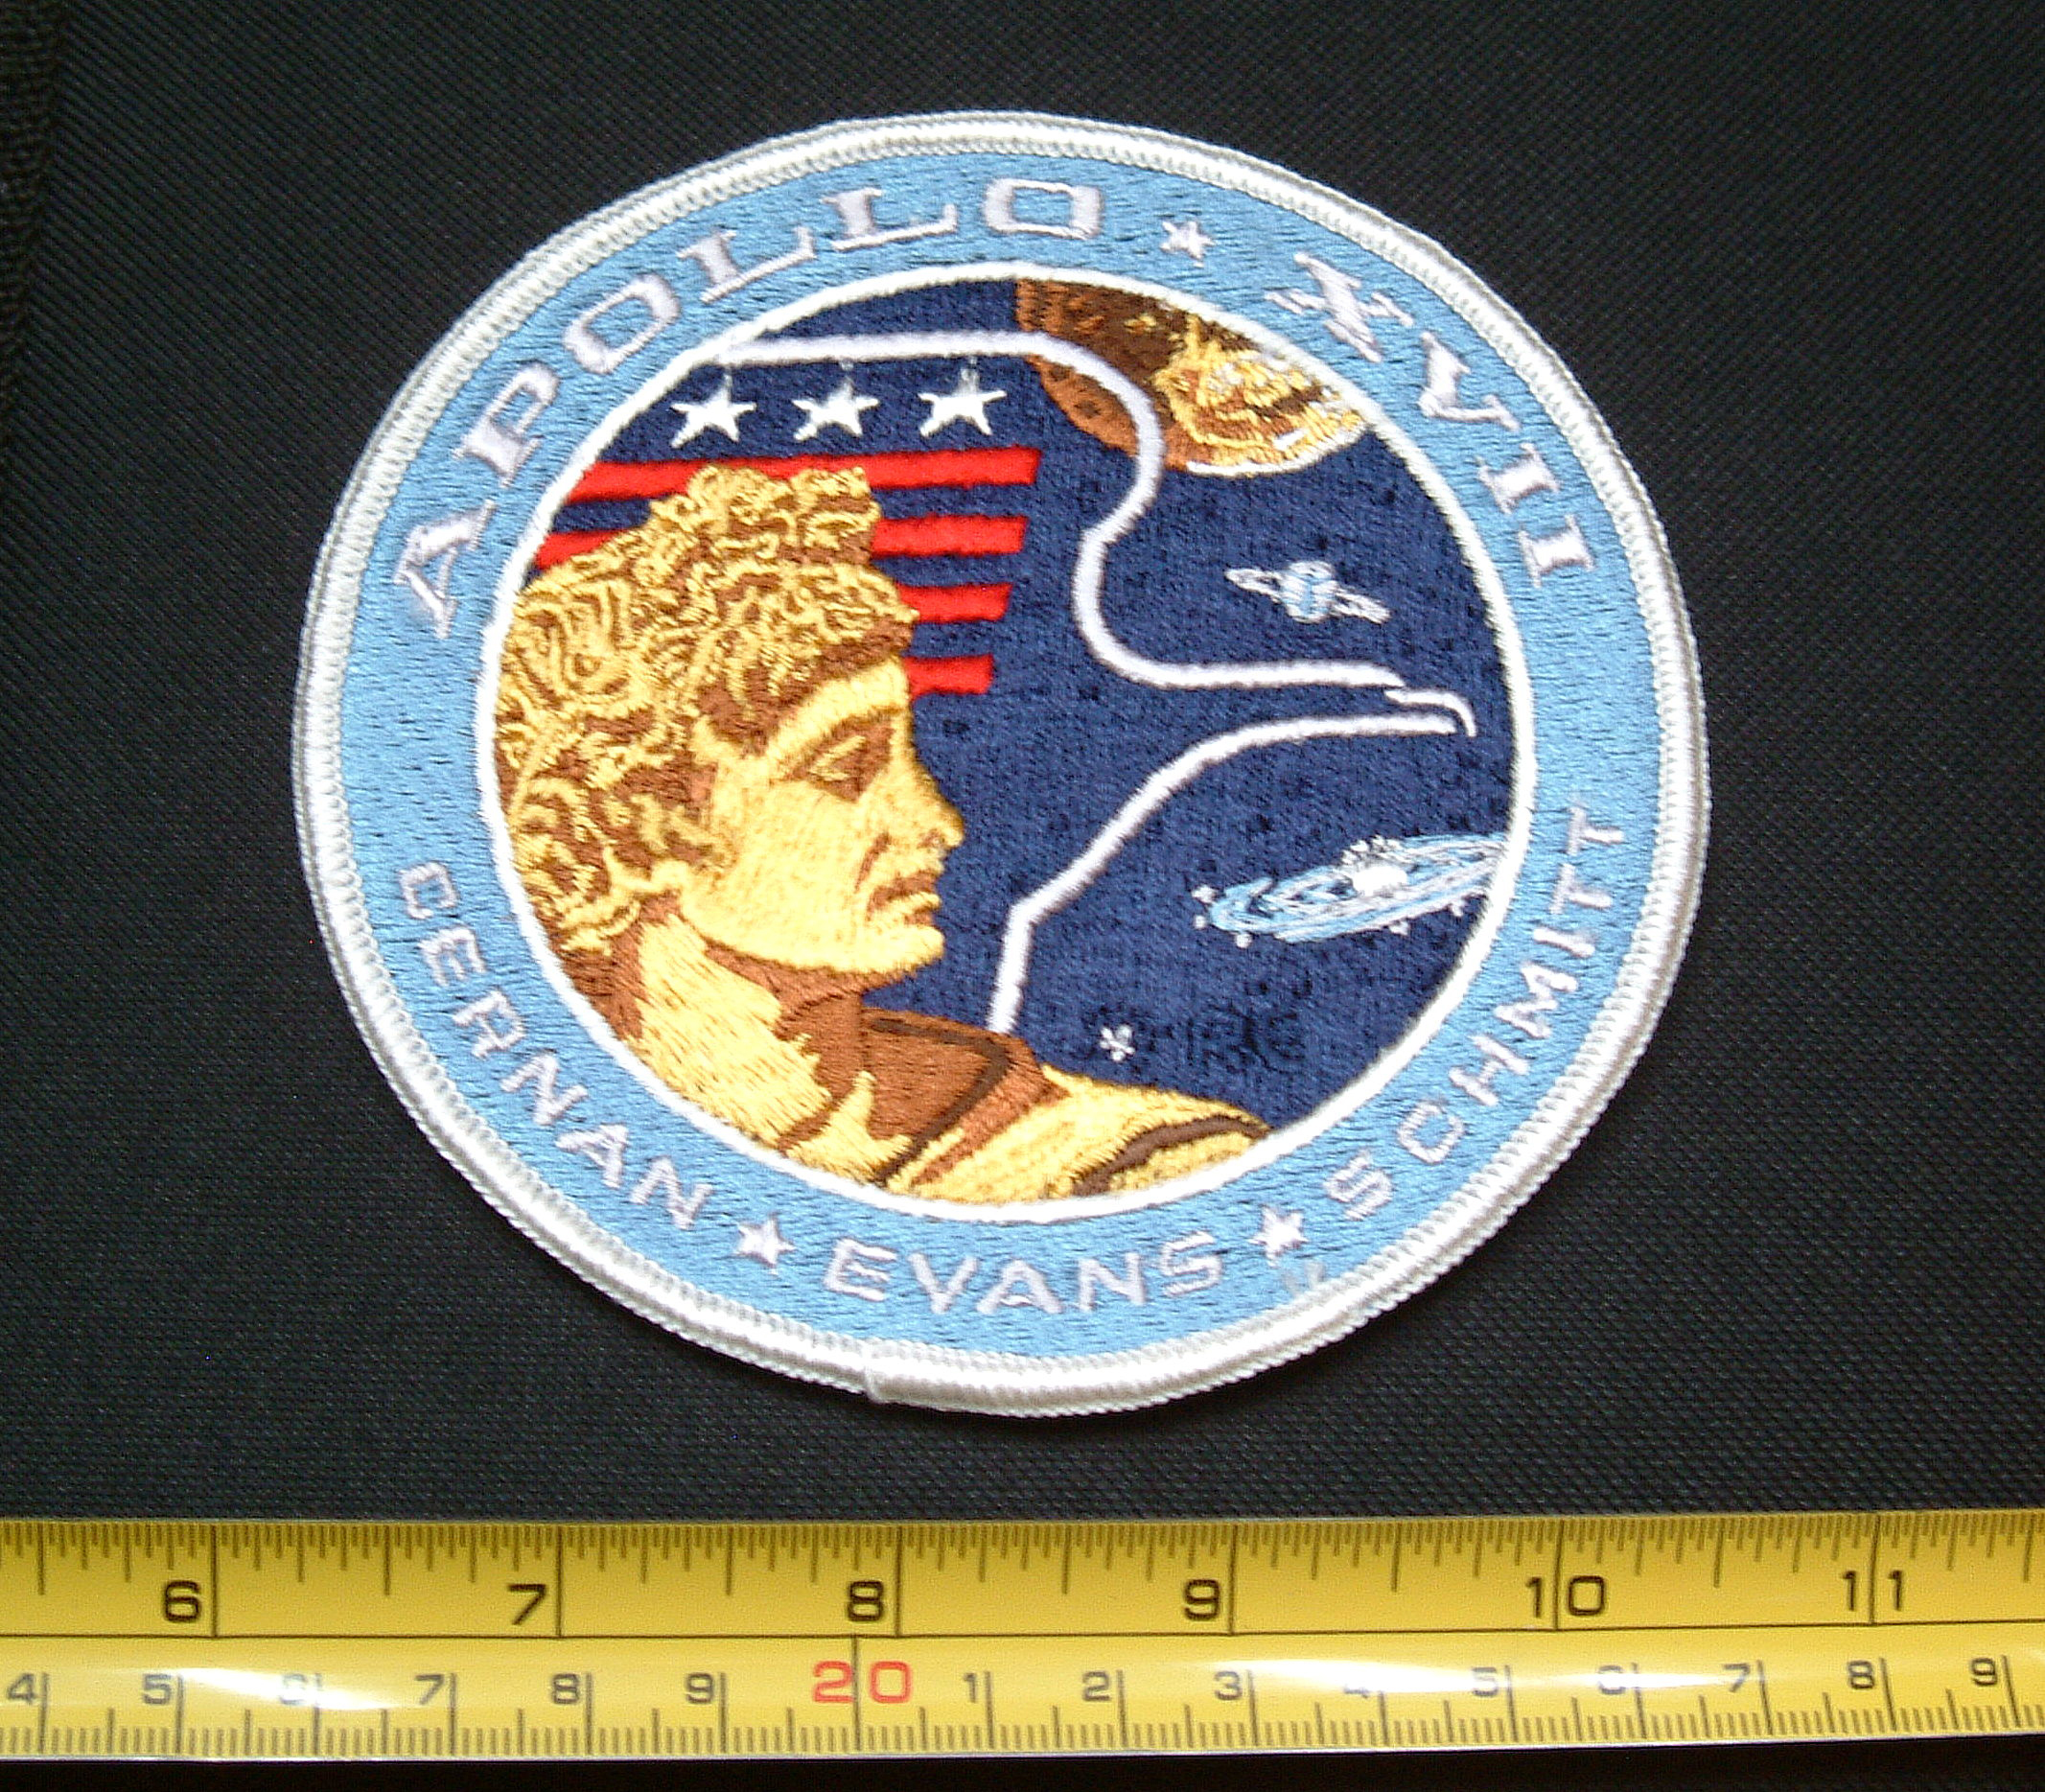 Apollo 17 Patch - Pics about space